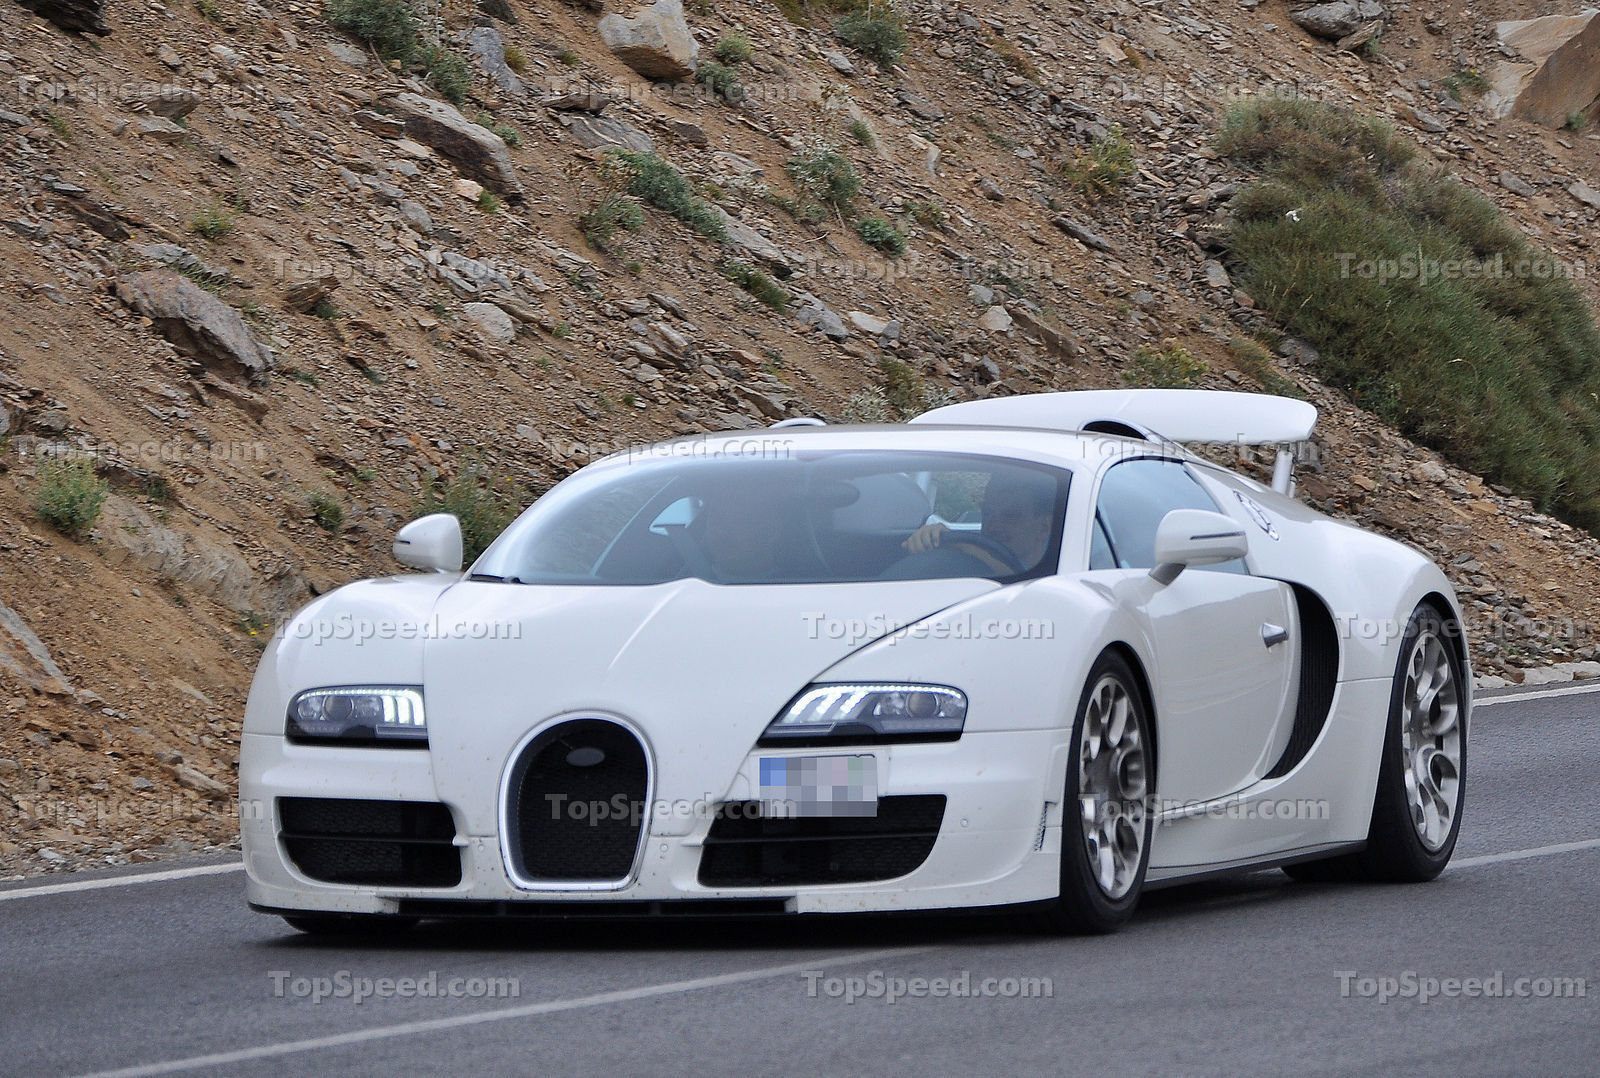 2012 bugatti veyron grand sport super sport review top speed. Black Bedroom Furniture Sets. Home Design Ideas